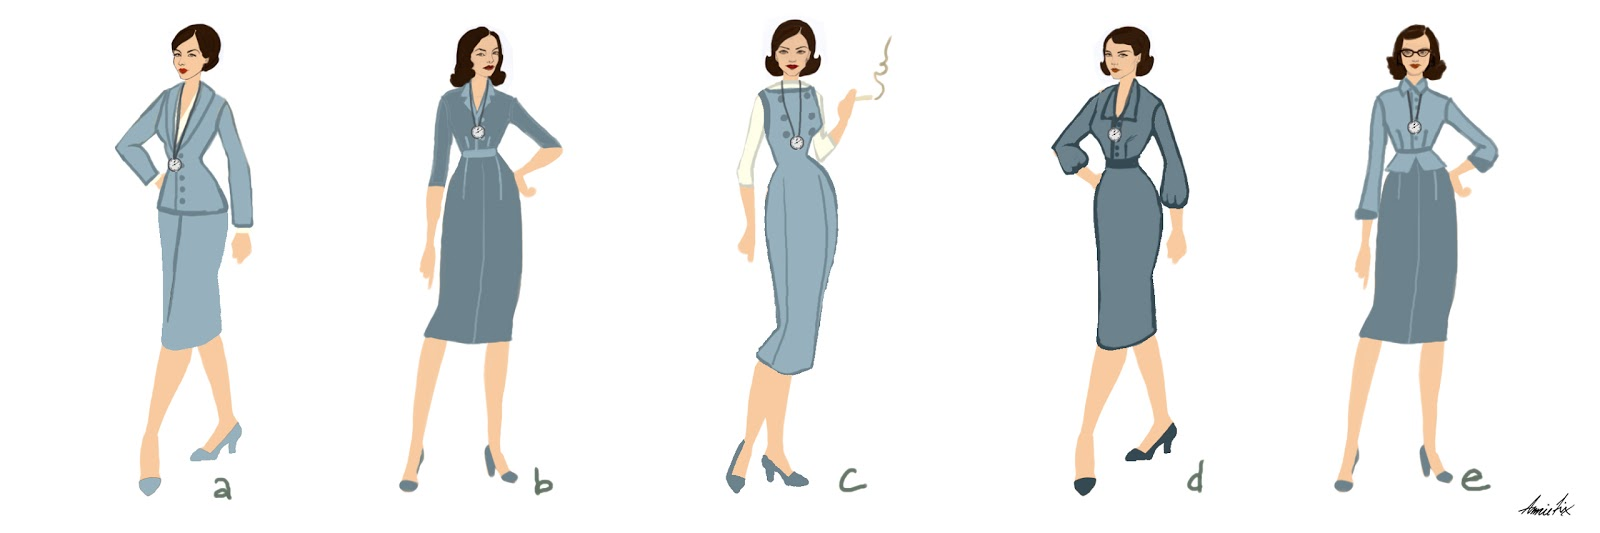 Character Analysis For Costume Design : Character angela weaver for xcom annie fix fashion